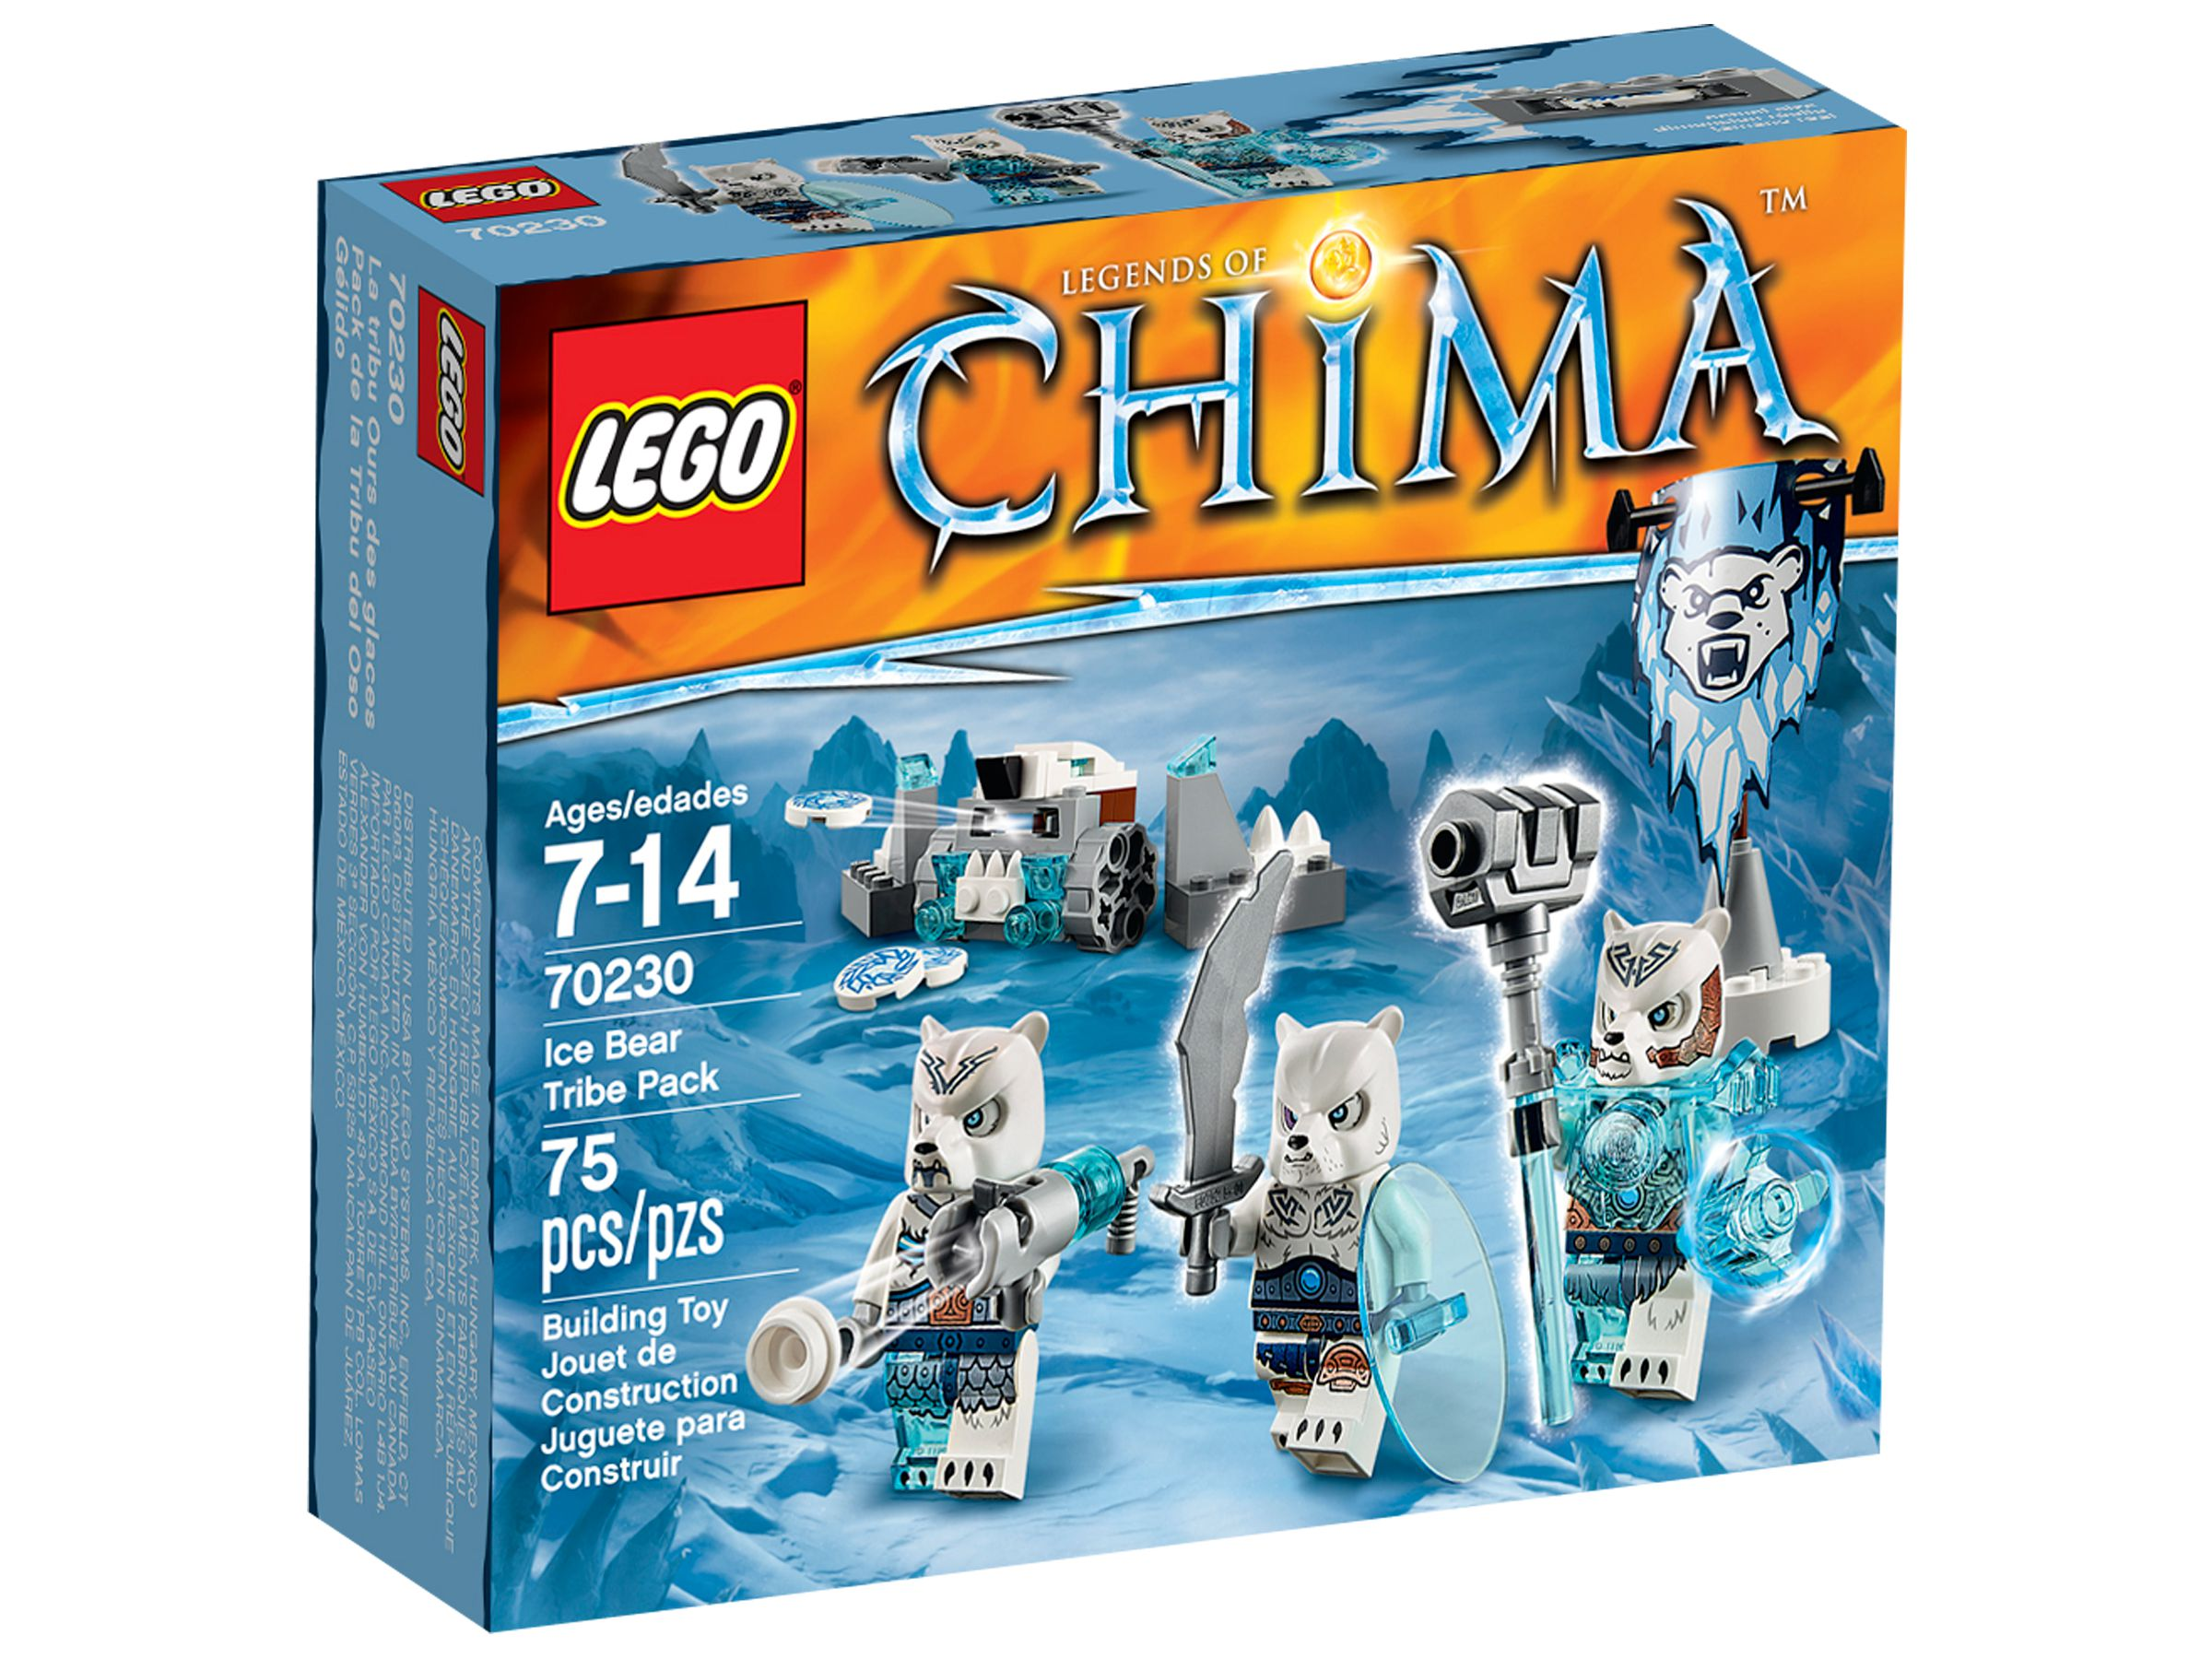 LEGO Legends Of Chima 70230 Eisbärstamm-Set LEGO_70230_alt1.jpg